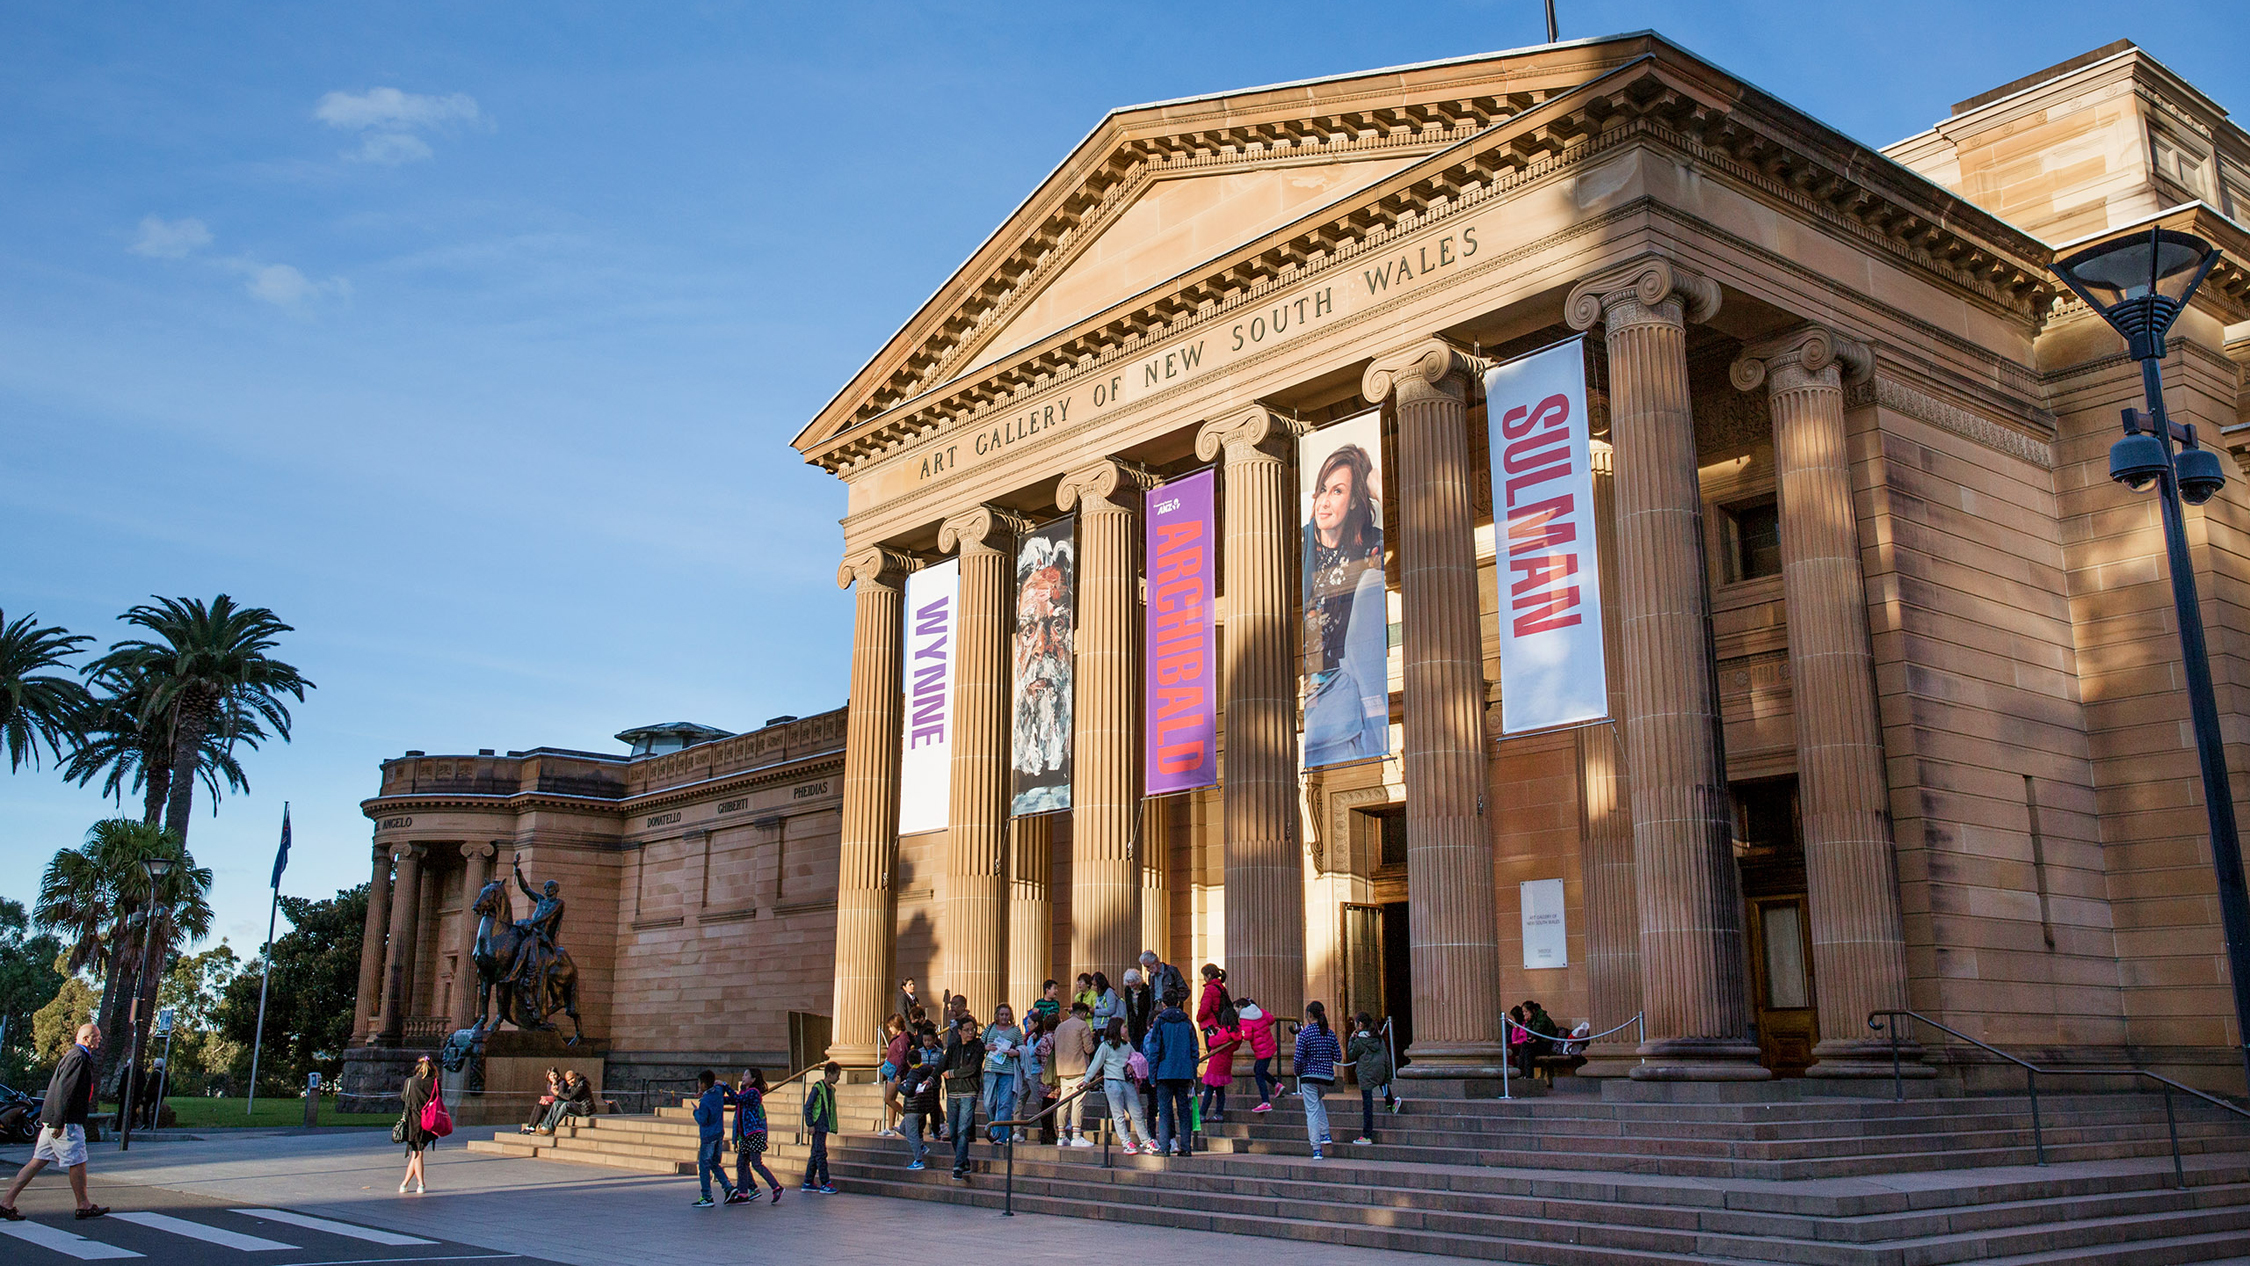 Art Gallery of New South Wales 2017 exterior daylight August feat Archibald Prize banners (C) AGNSW photographer credit Felicity Jenkins